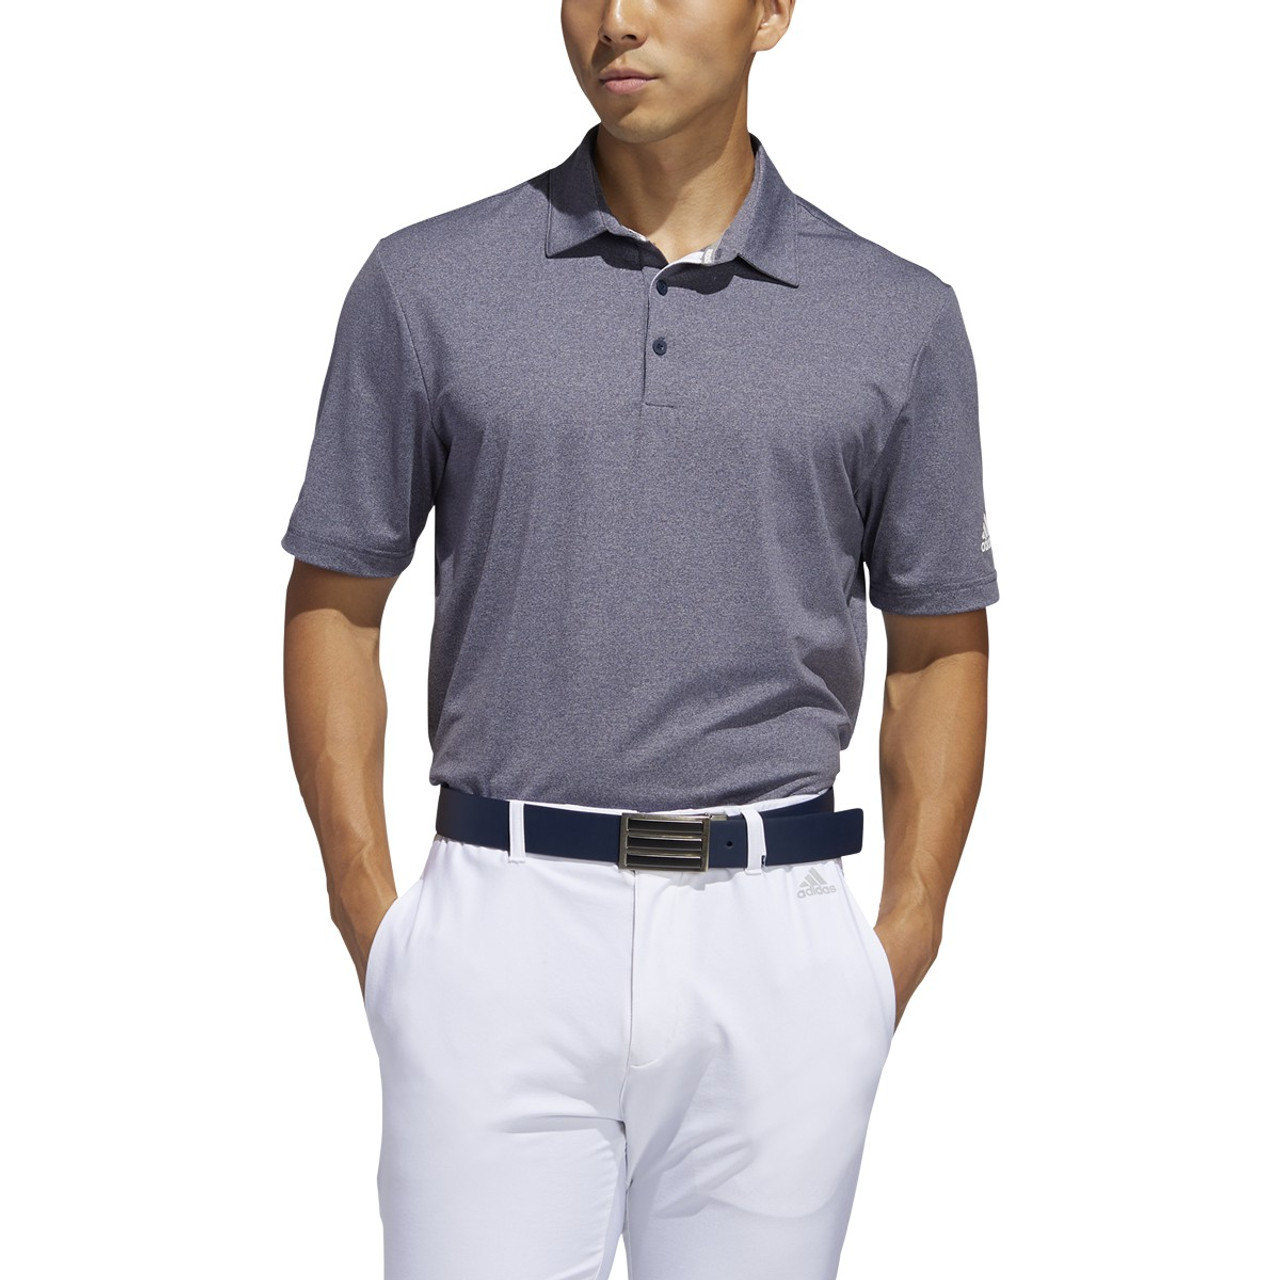 Adidas Ultimate 365 2.0 Heather Polo - Collegiate Navy